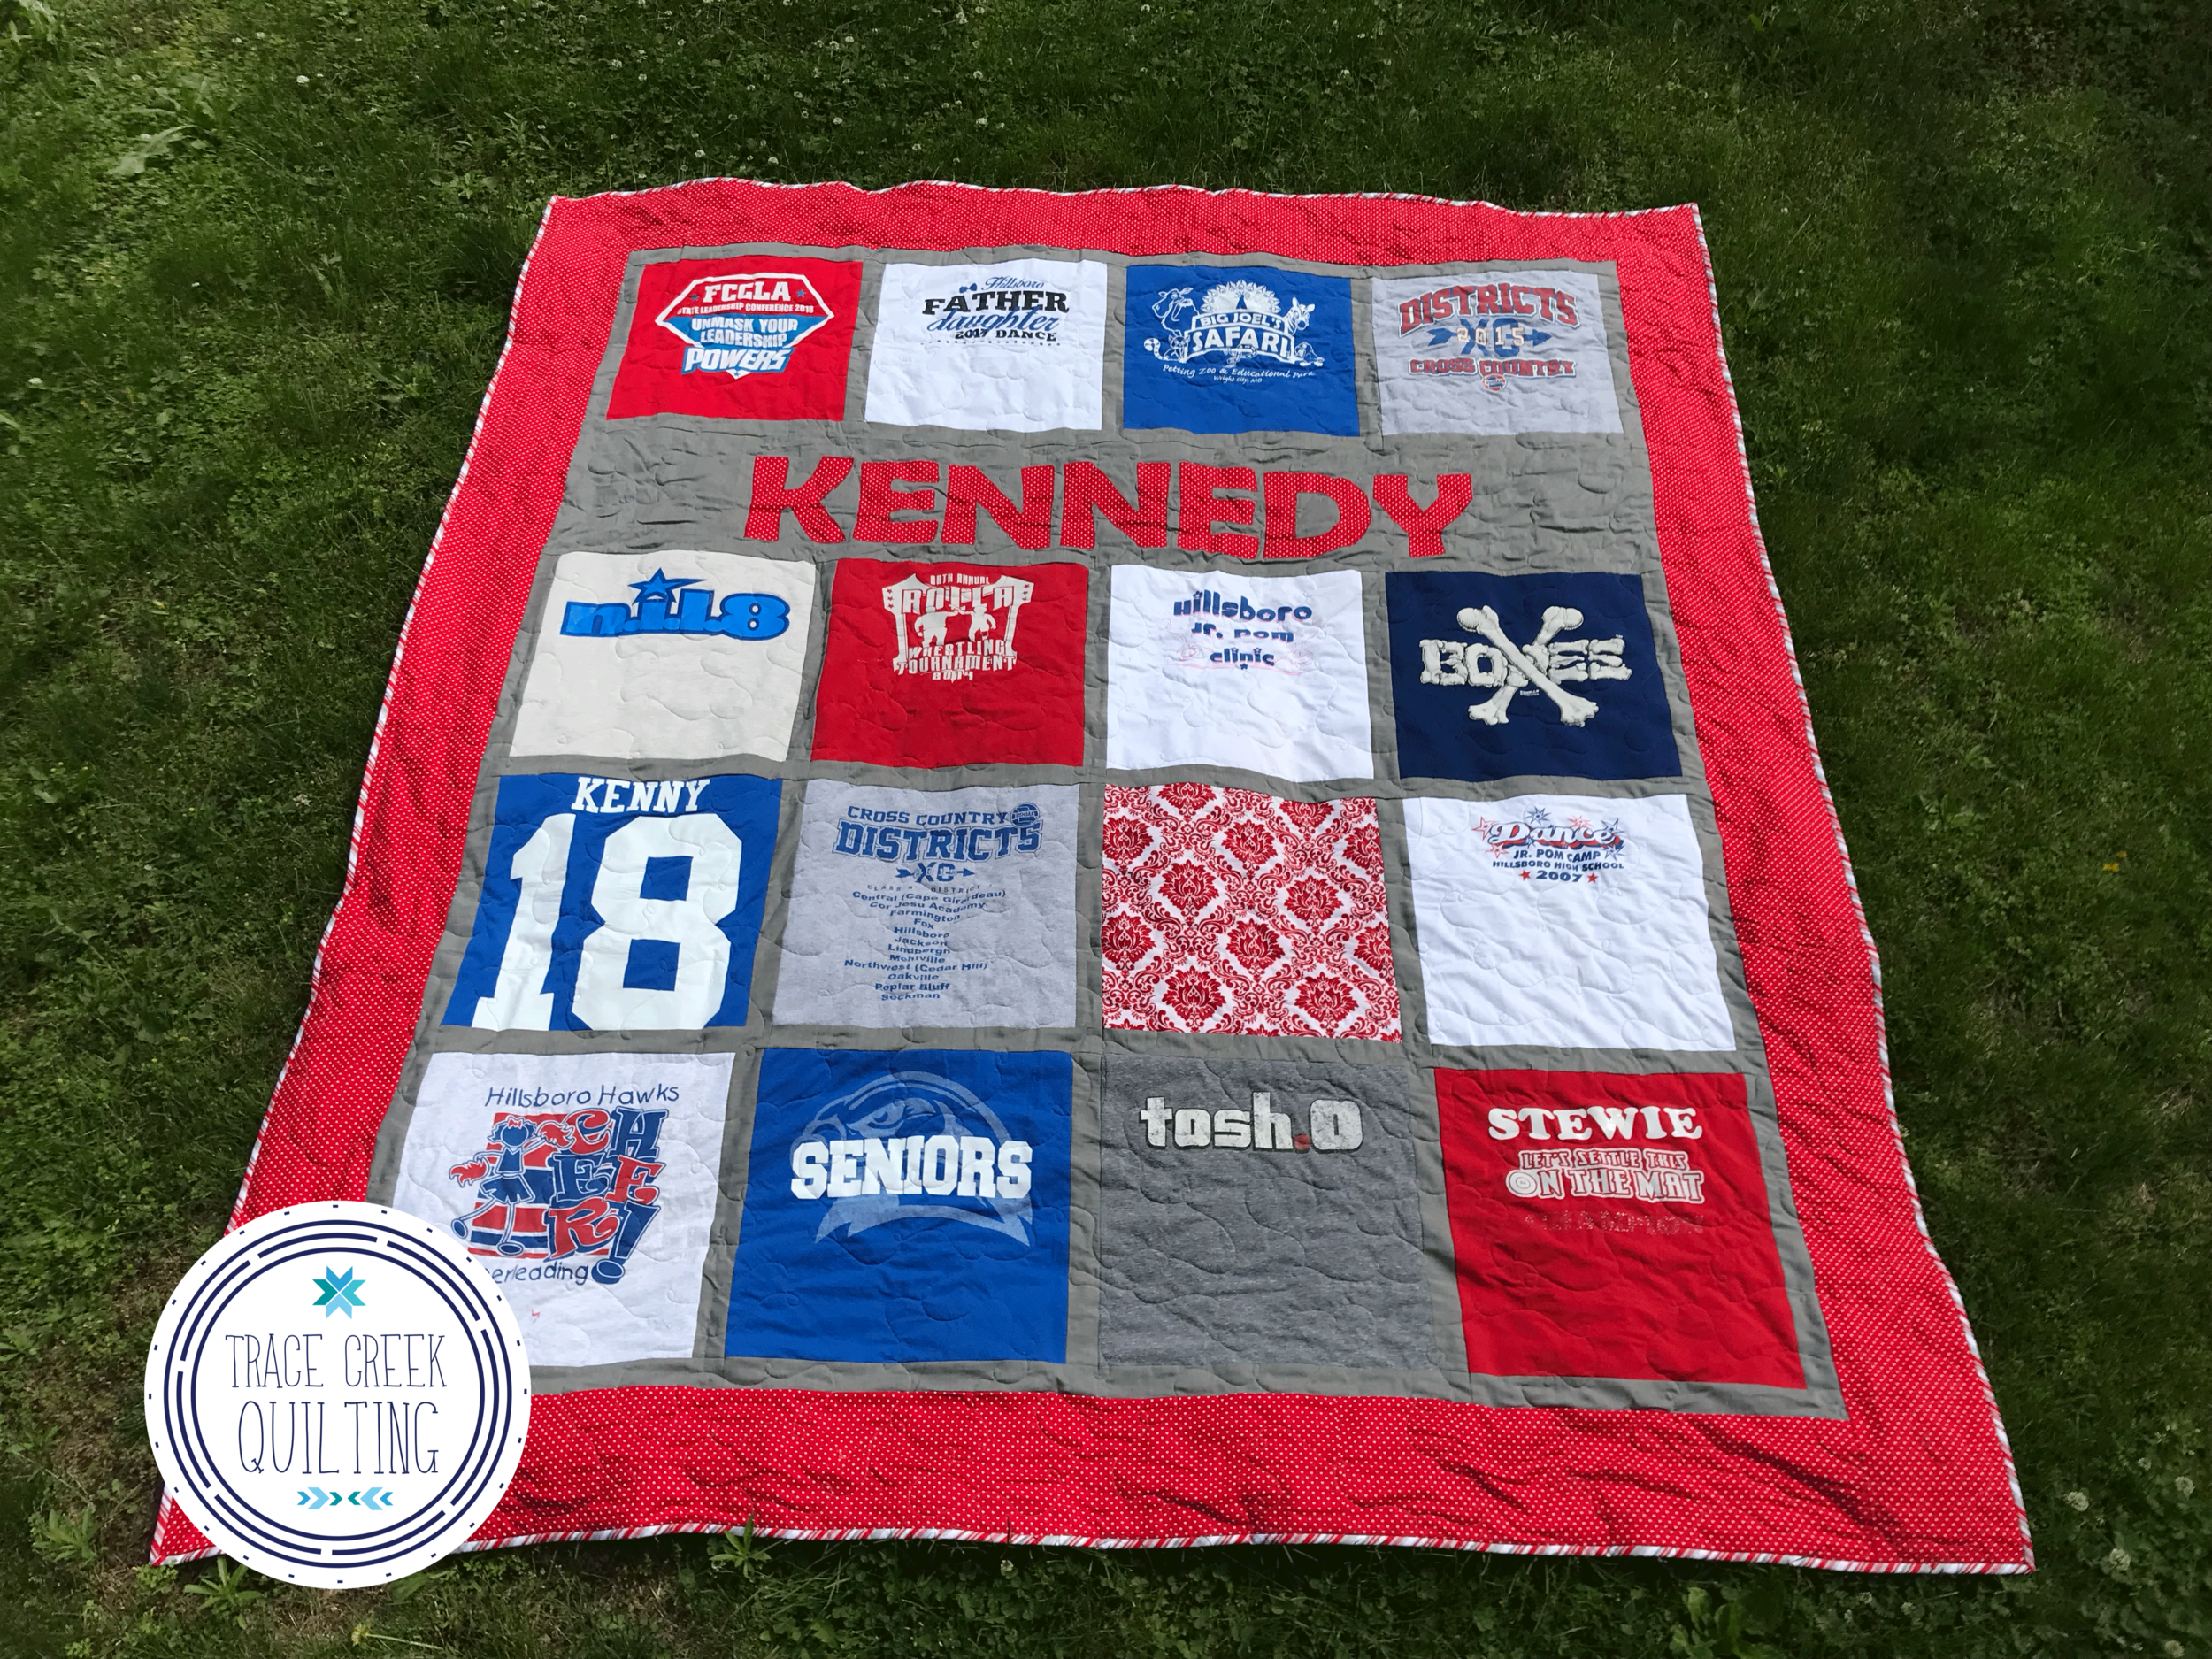 TShirt-Quilt-Trace-Creek-Quilting-3.png